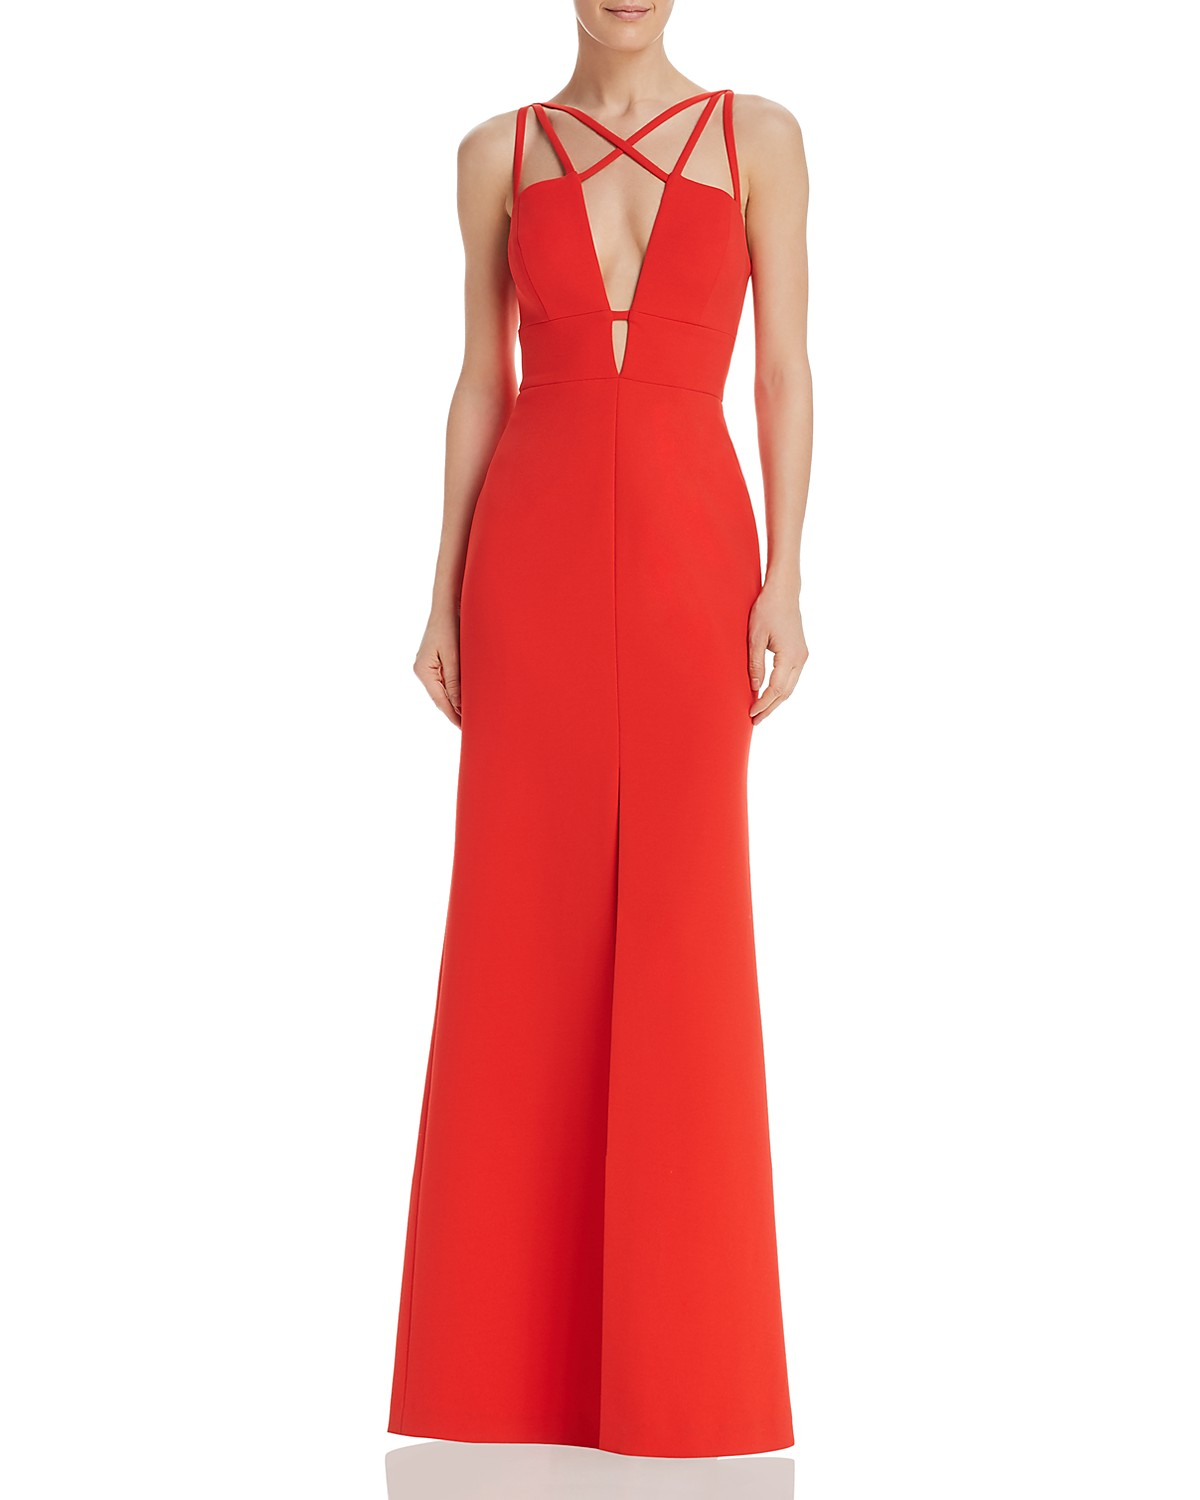 BCBGMAXAZRIA Strap-Detail Gown - 100% Exclusive | Bloomingdale\'s